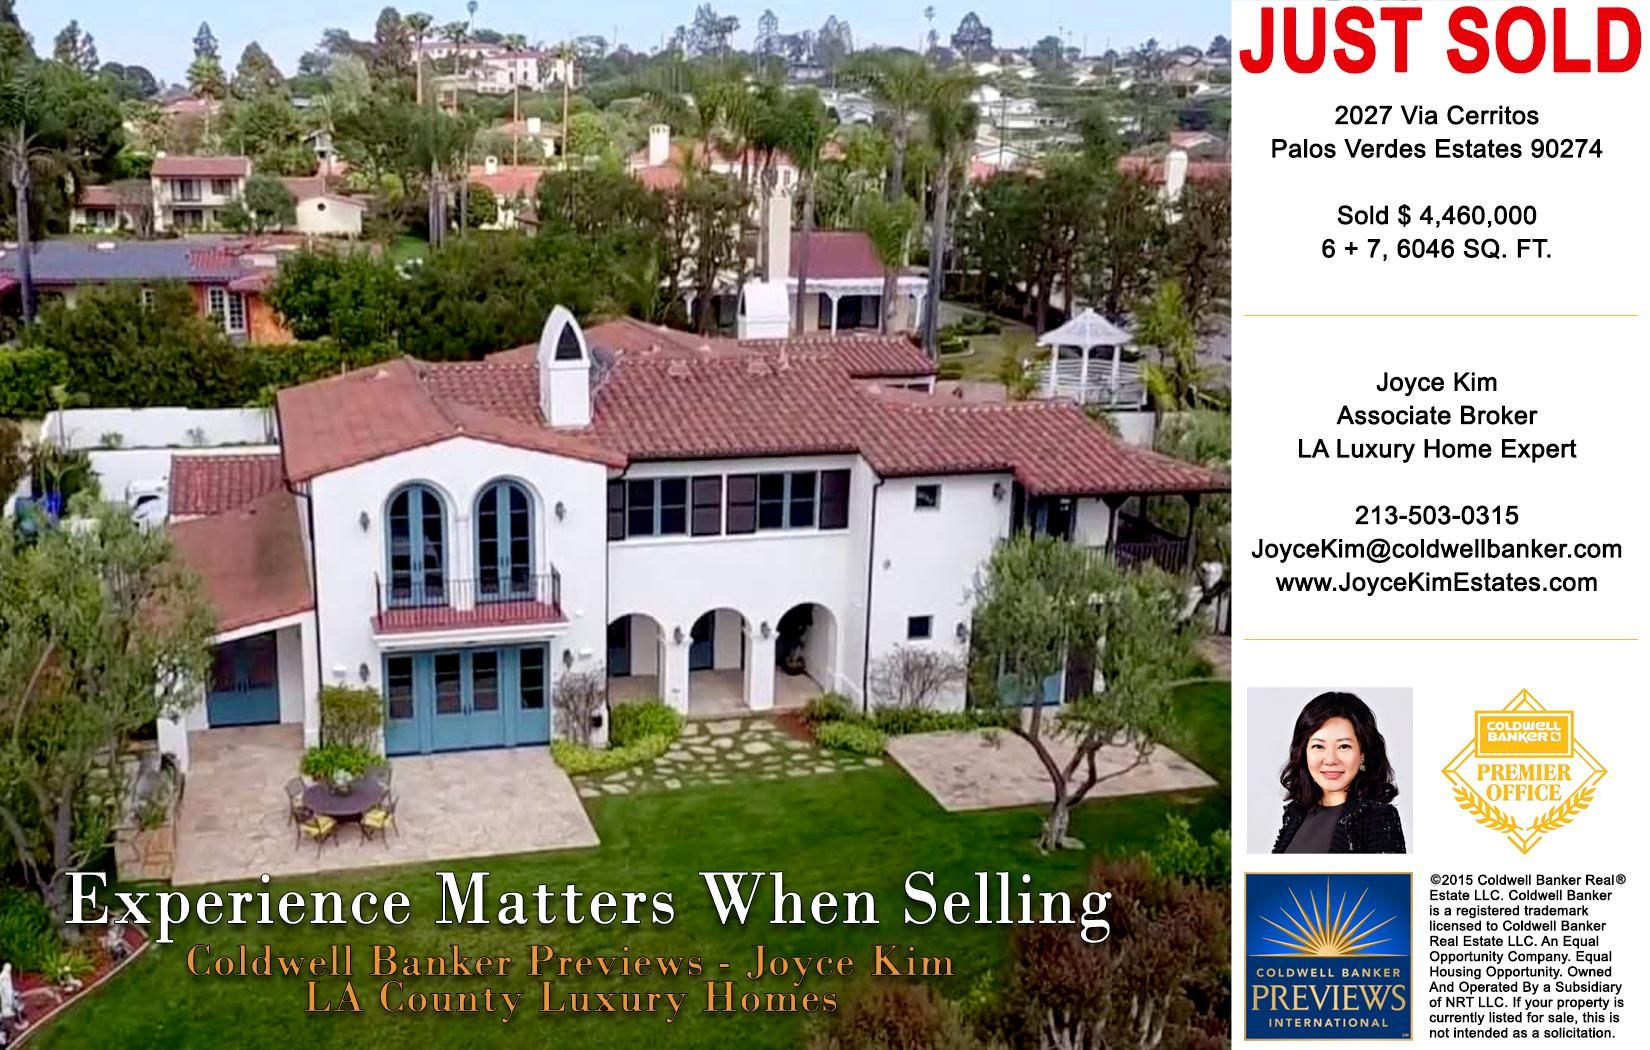 Joyce Kim - real estate mailers - Tips from the pros